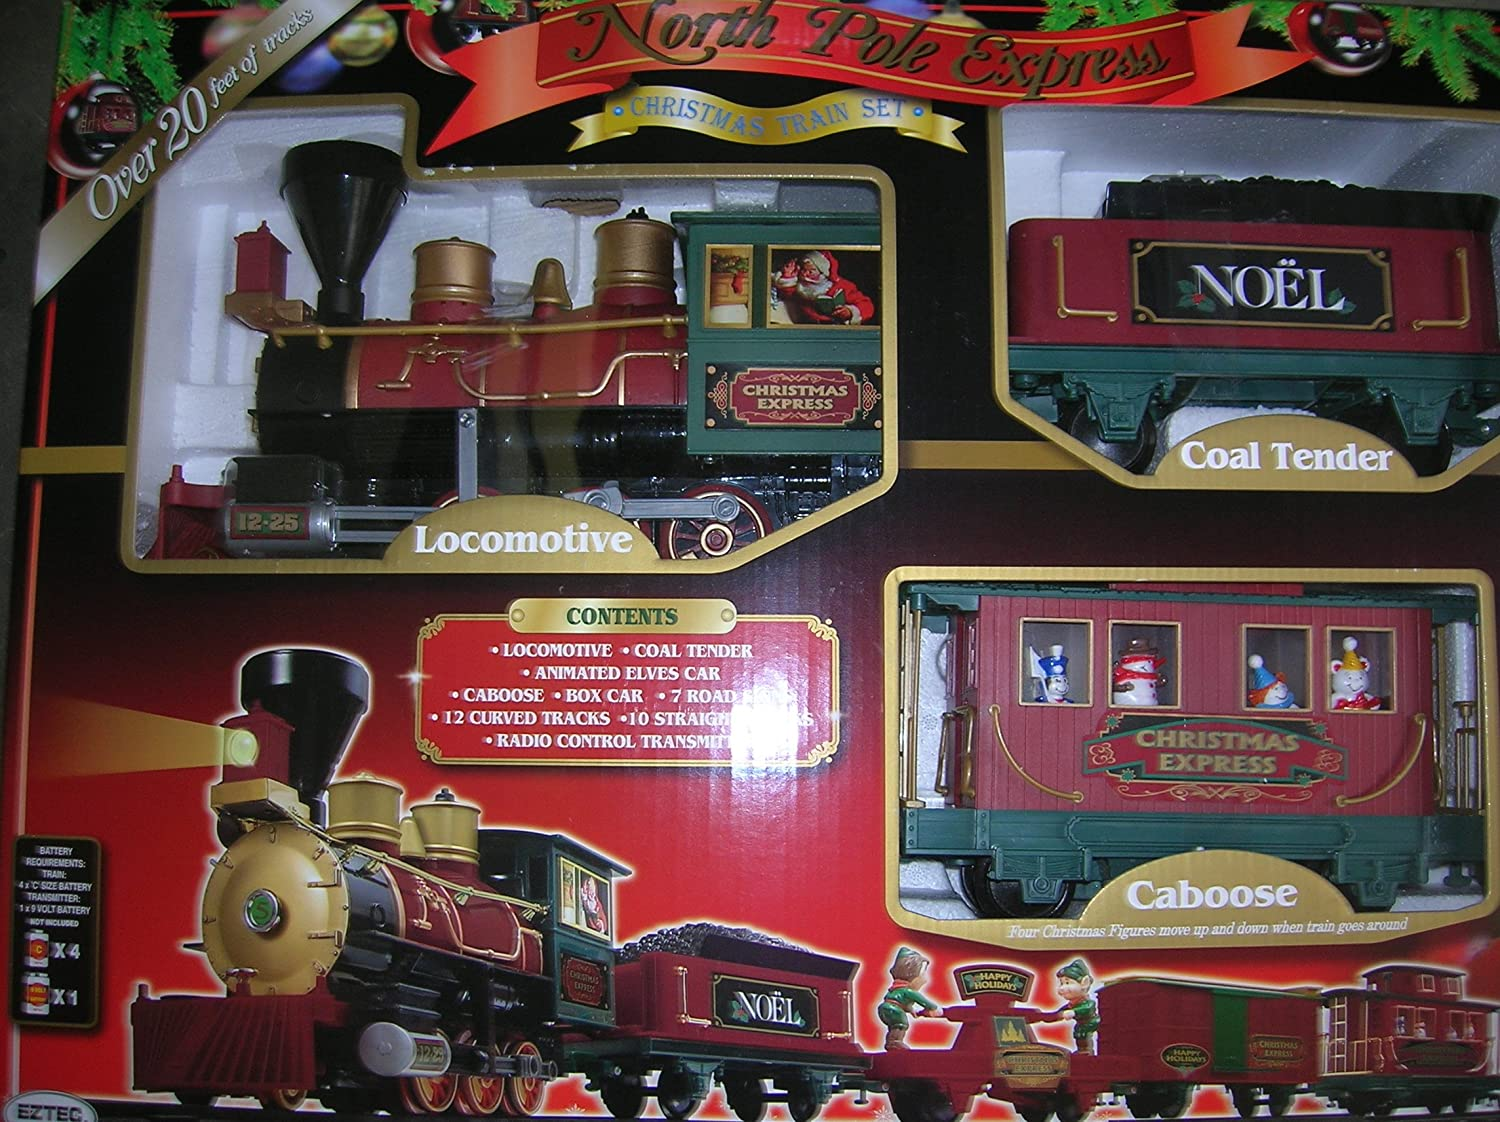 Amazon.com: North Pole Express Christmas Train Set 35 Pieces ...